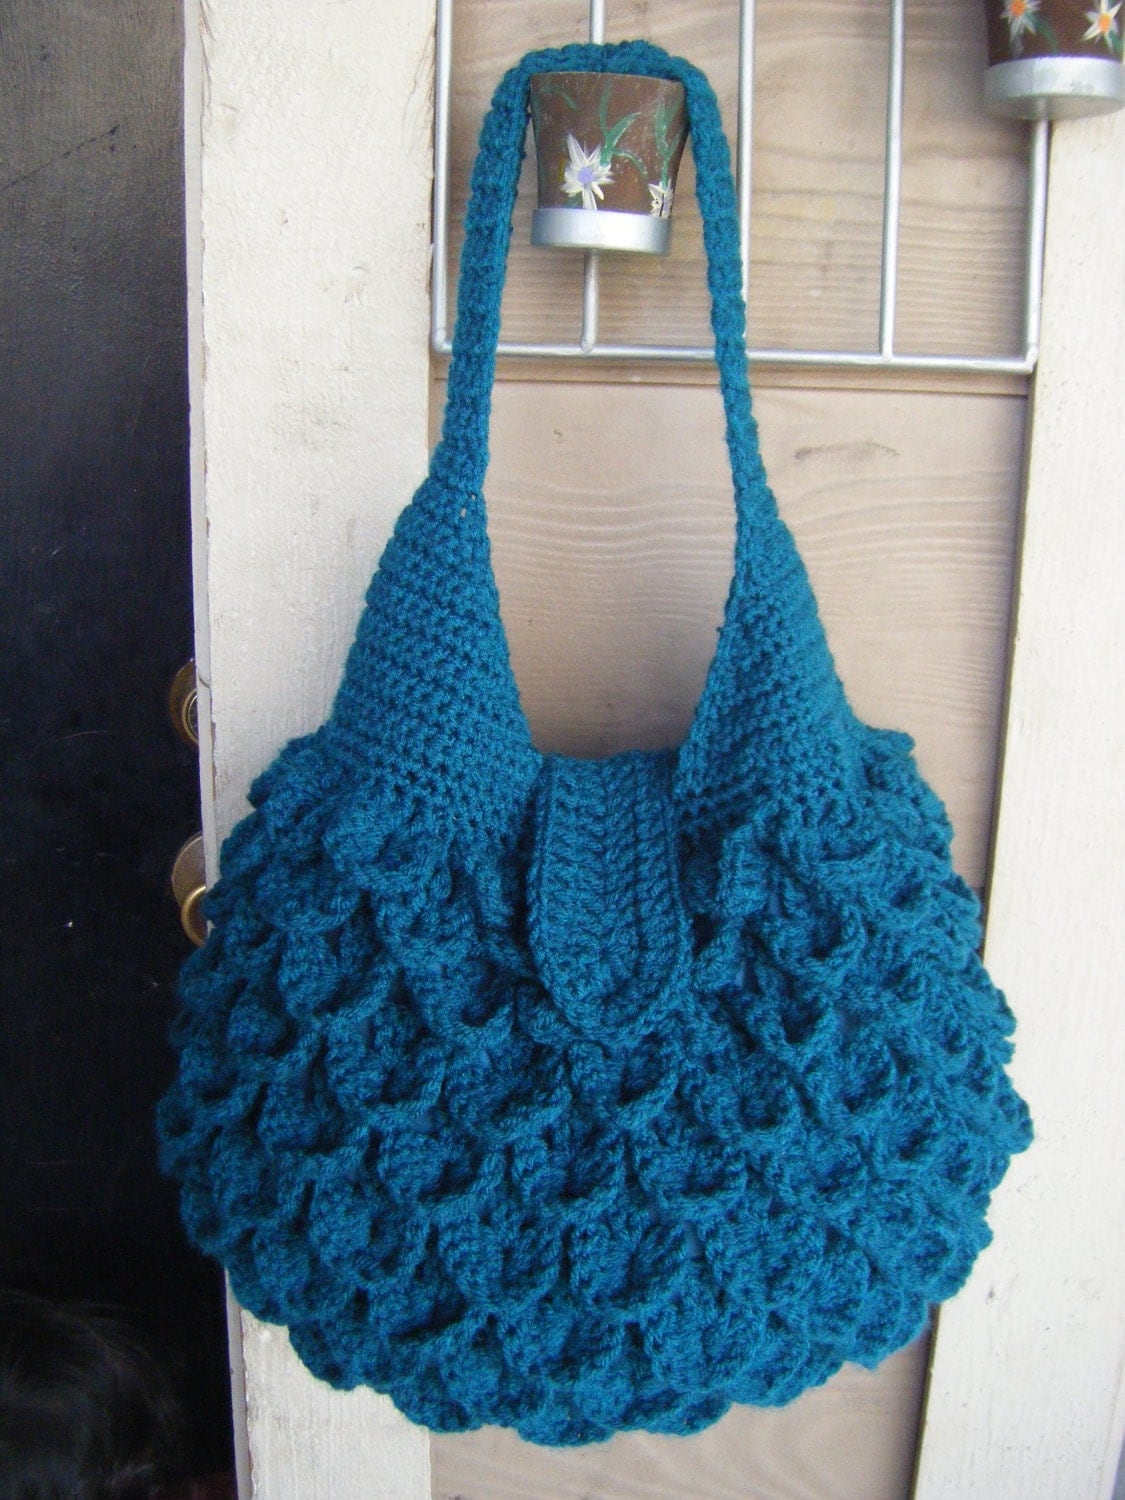 Crochet Designs For Bags : Crochet Crocodile Bag Pattern PERMISSION SELL by NatalieSpot